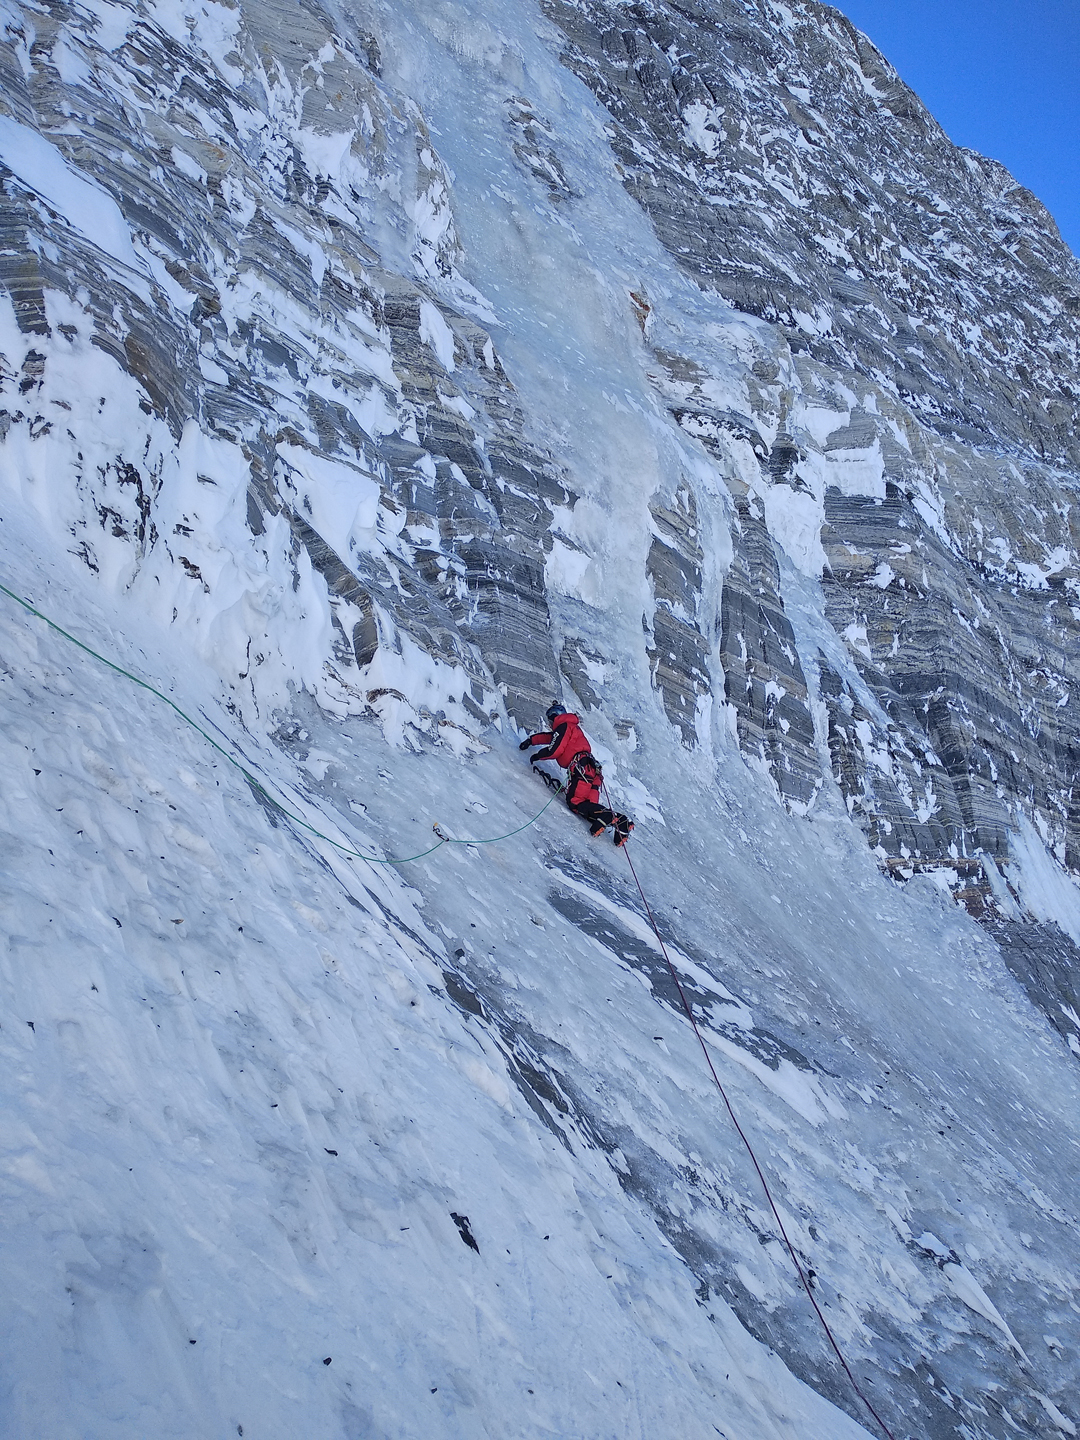 Approaching a steep section of bulletproof winter ice on the lower north face of Pik Communism.